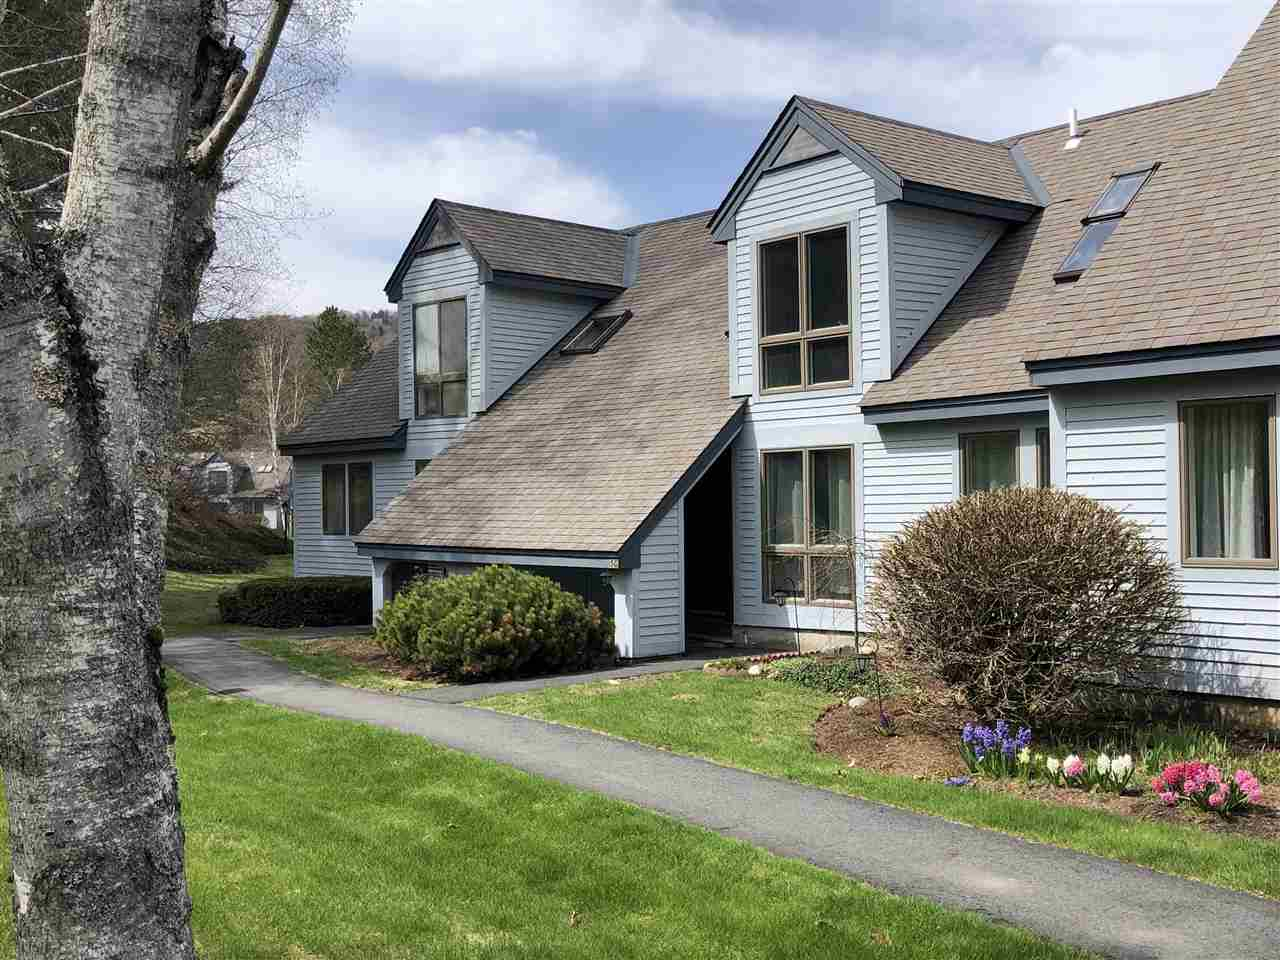 VILLAGE OF QUECHEE IN TOWN OF HARTFORD VT Condo for sale $$138,000 | $103 per sq.ft.